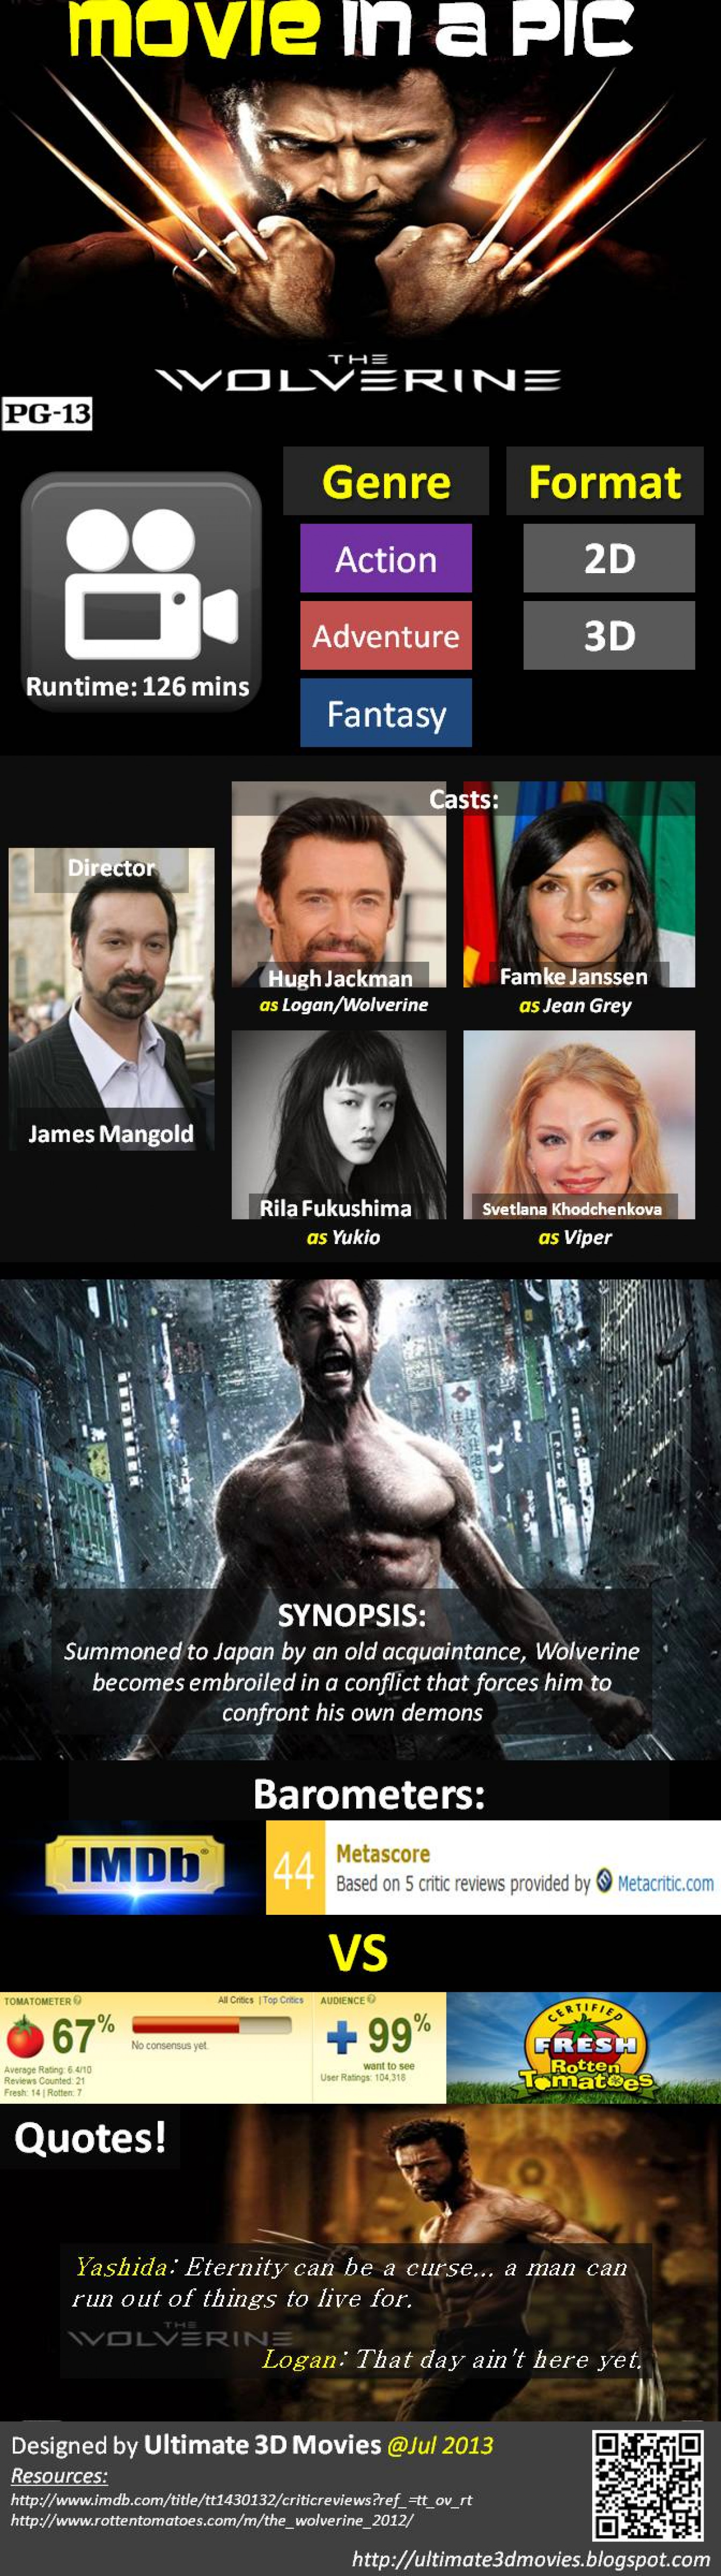 The Wolverine - Movie In A Pic Infographic